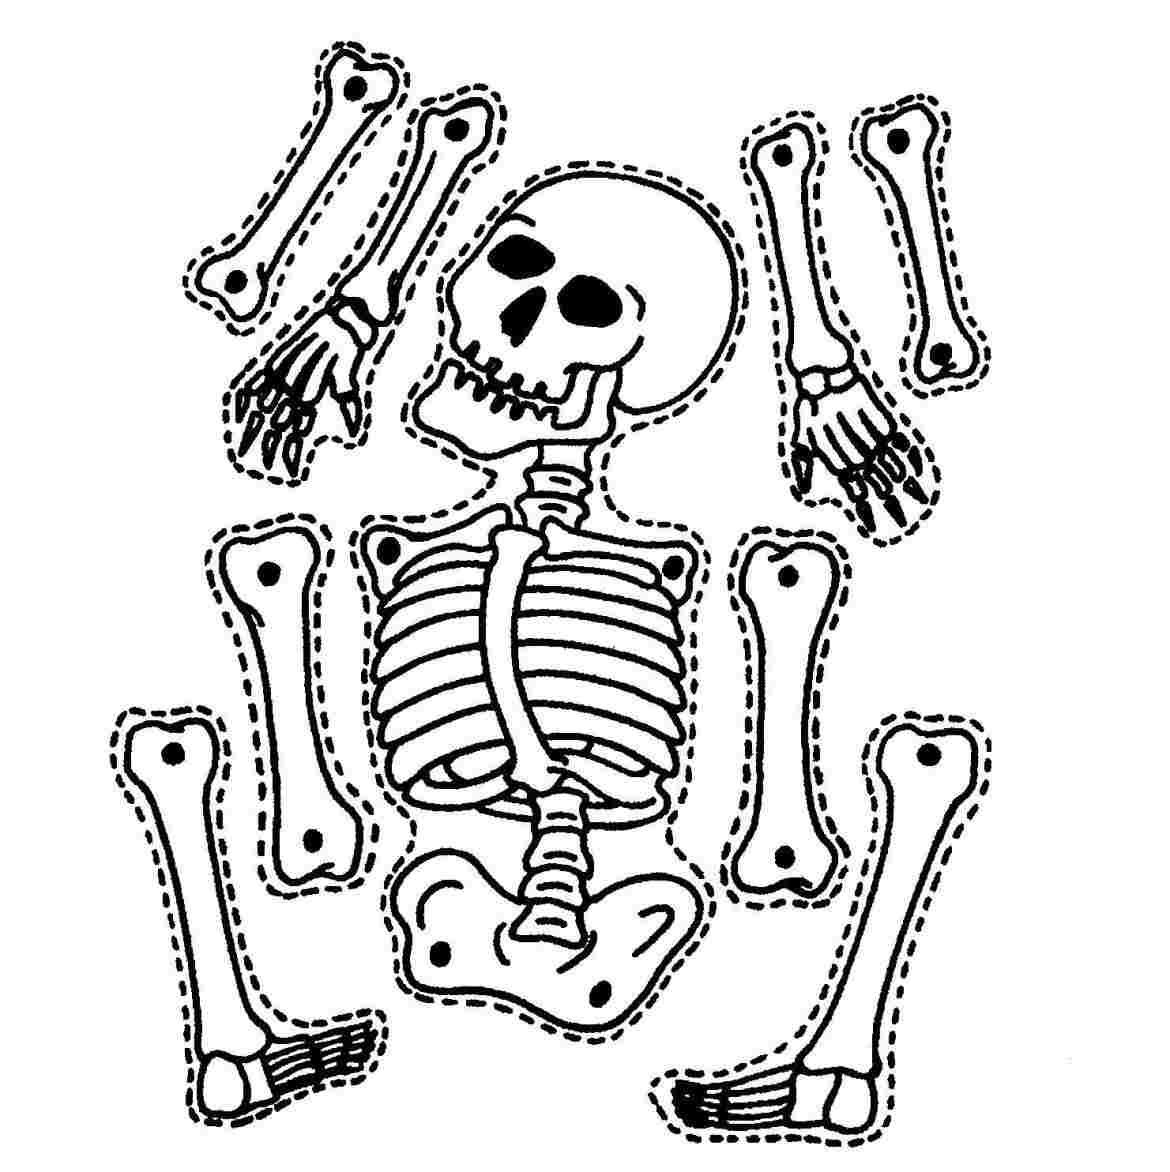 1170x1172 Human Skeletal System Drawing Easy Skeleton Drawing Lickclick How